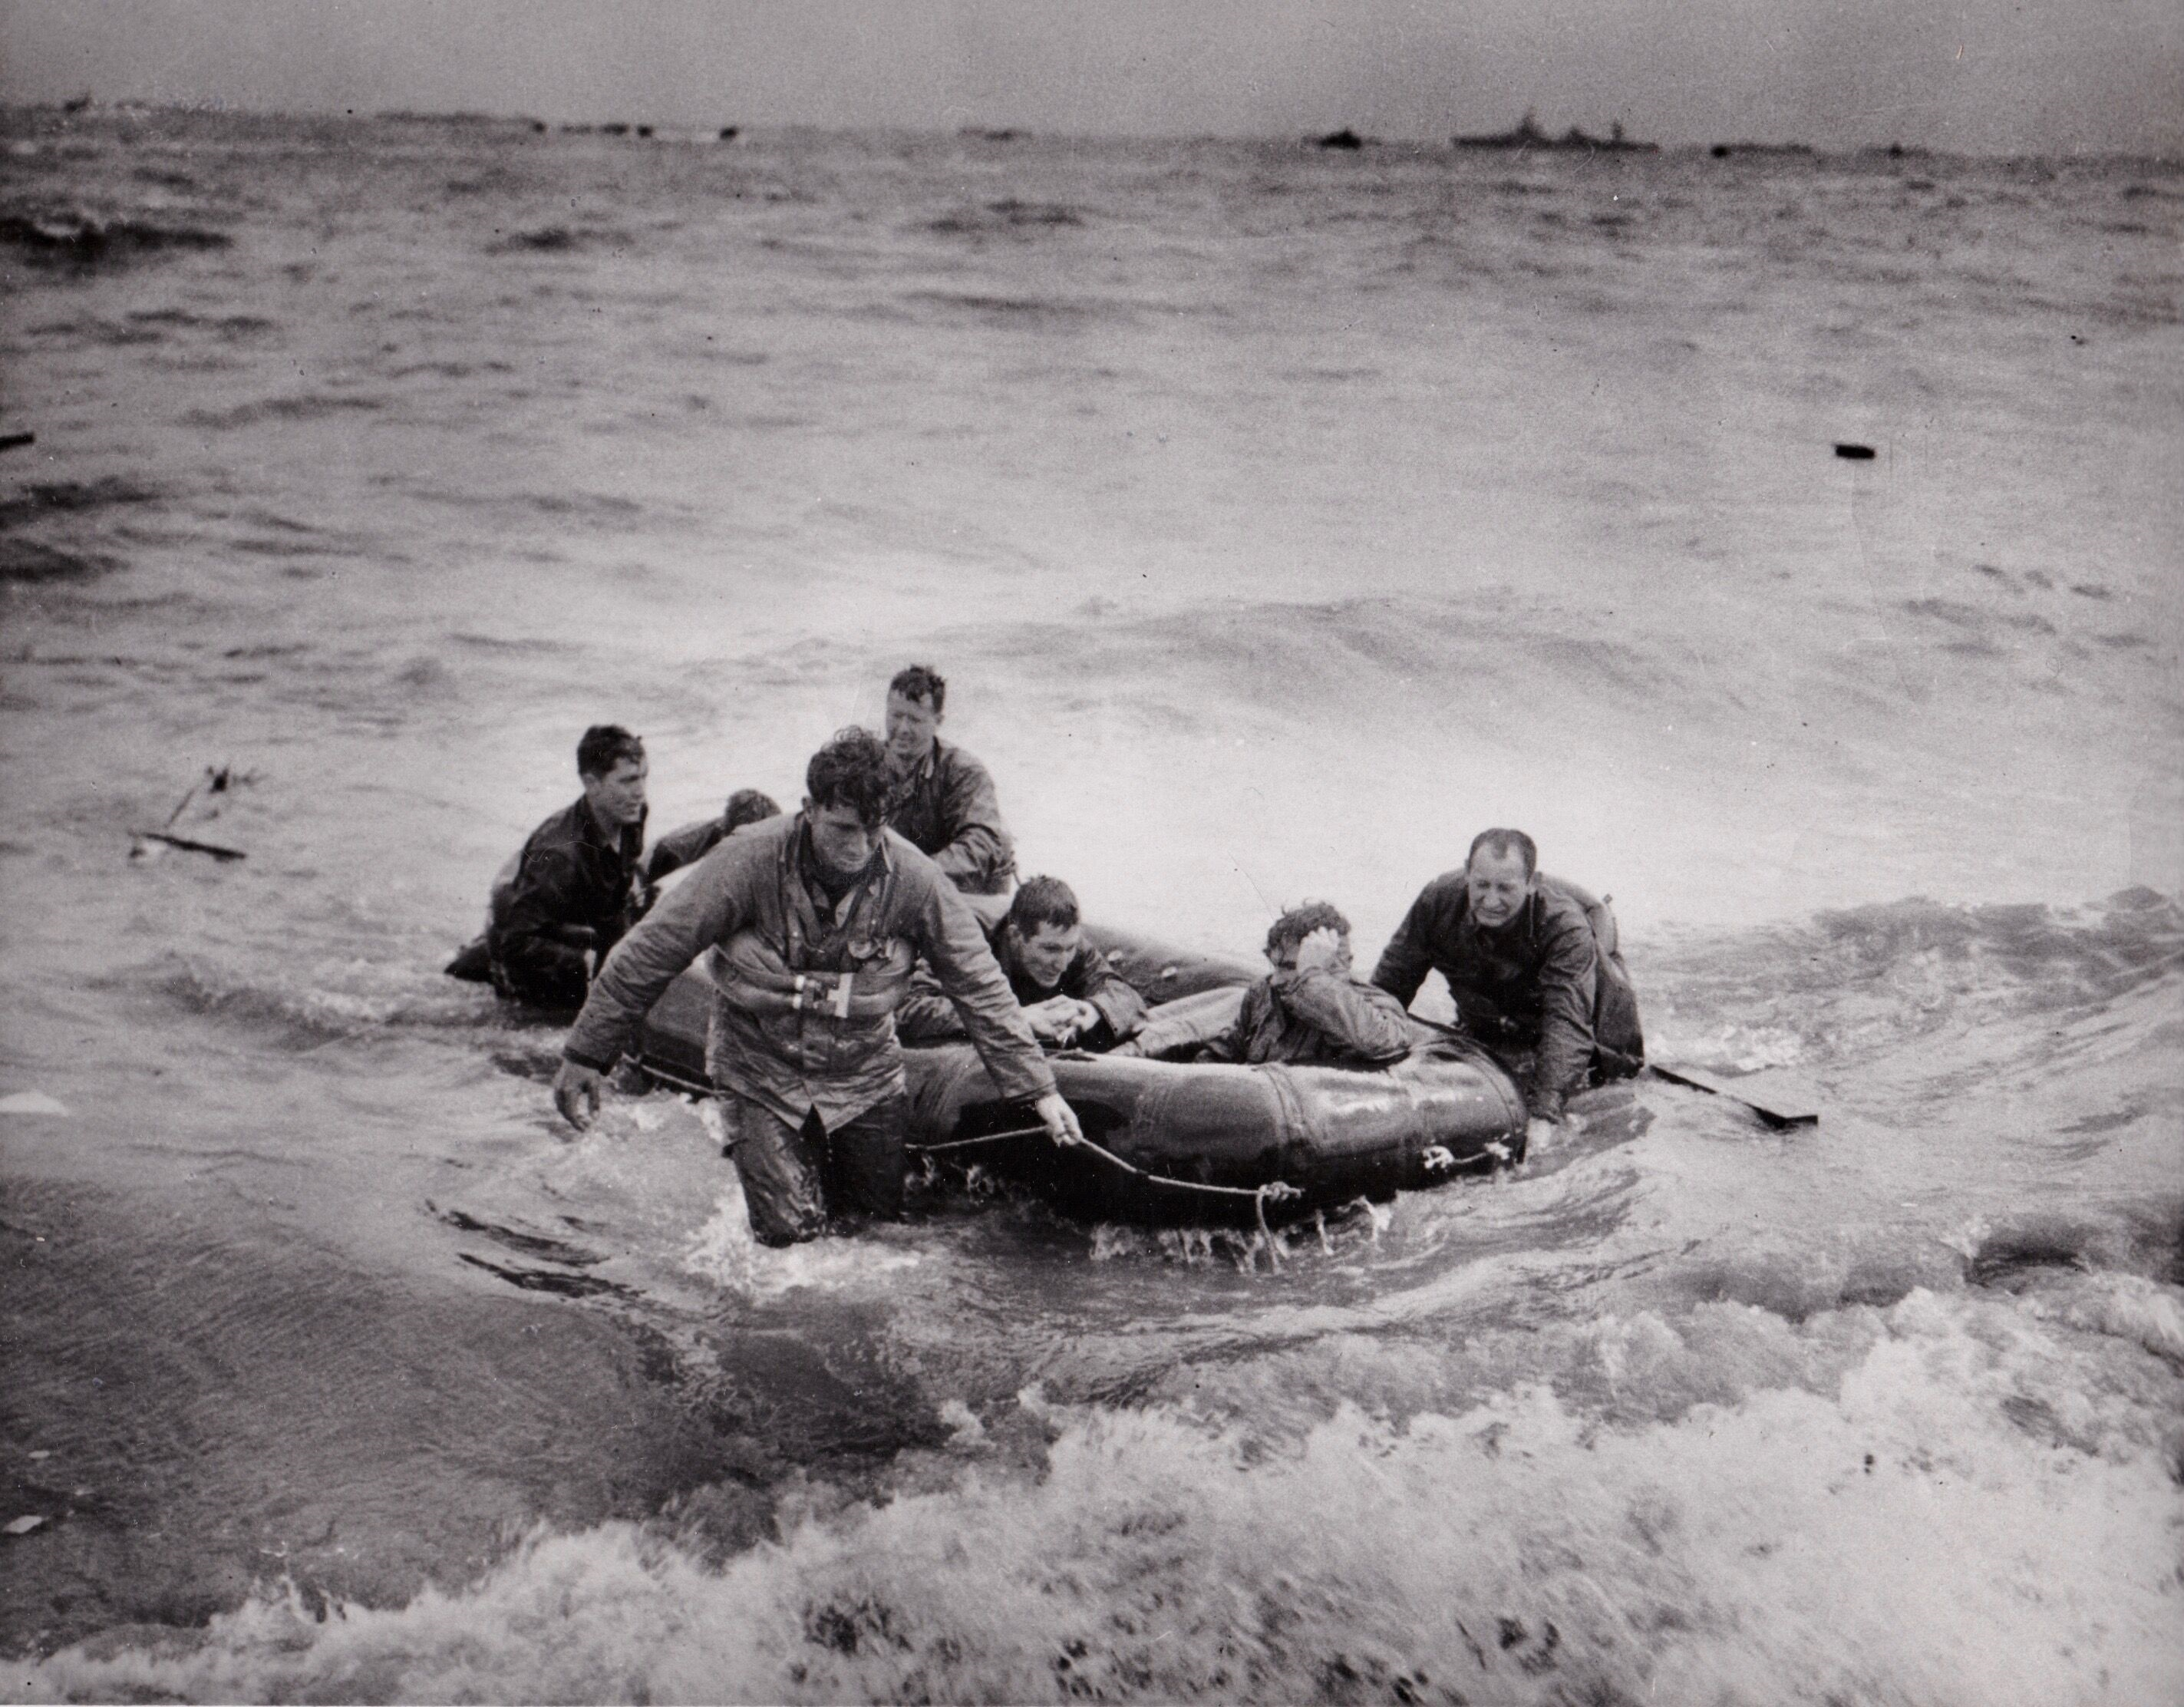 How a Pennsylvania man ended up in an iconic D-Day invasion